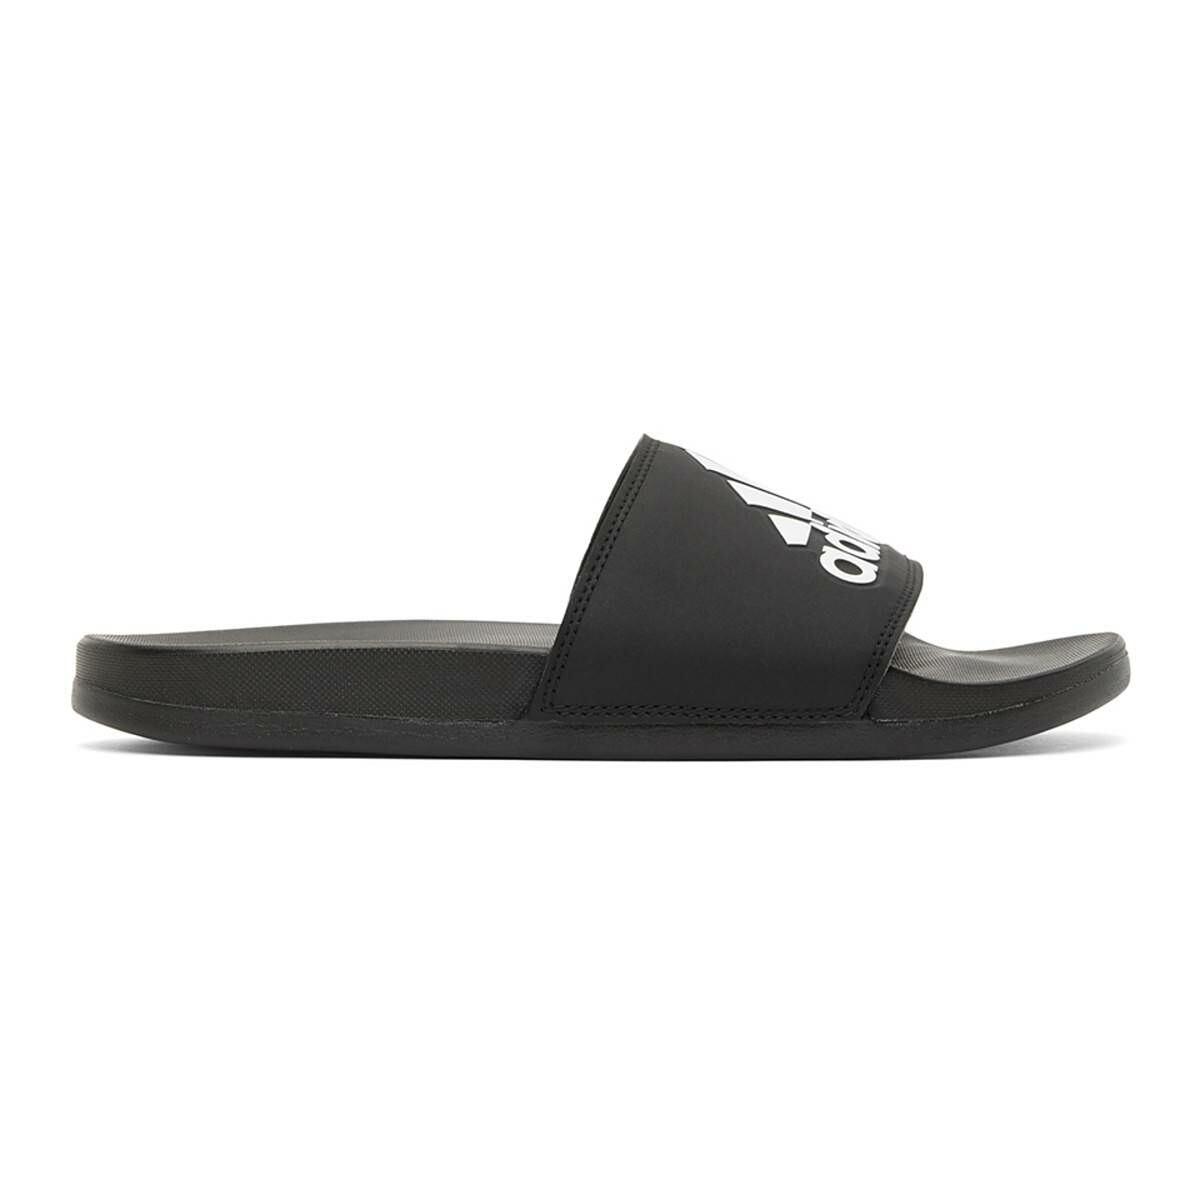 adidas Originals Black and White Adilette Comfort Slides Ssense USA MEN Men SHOES Mens SANDALS